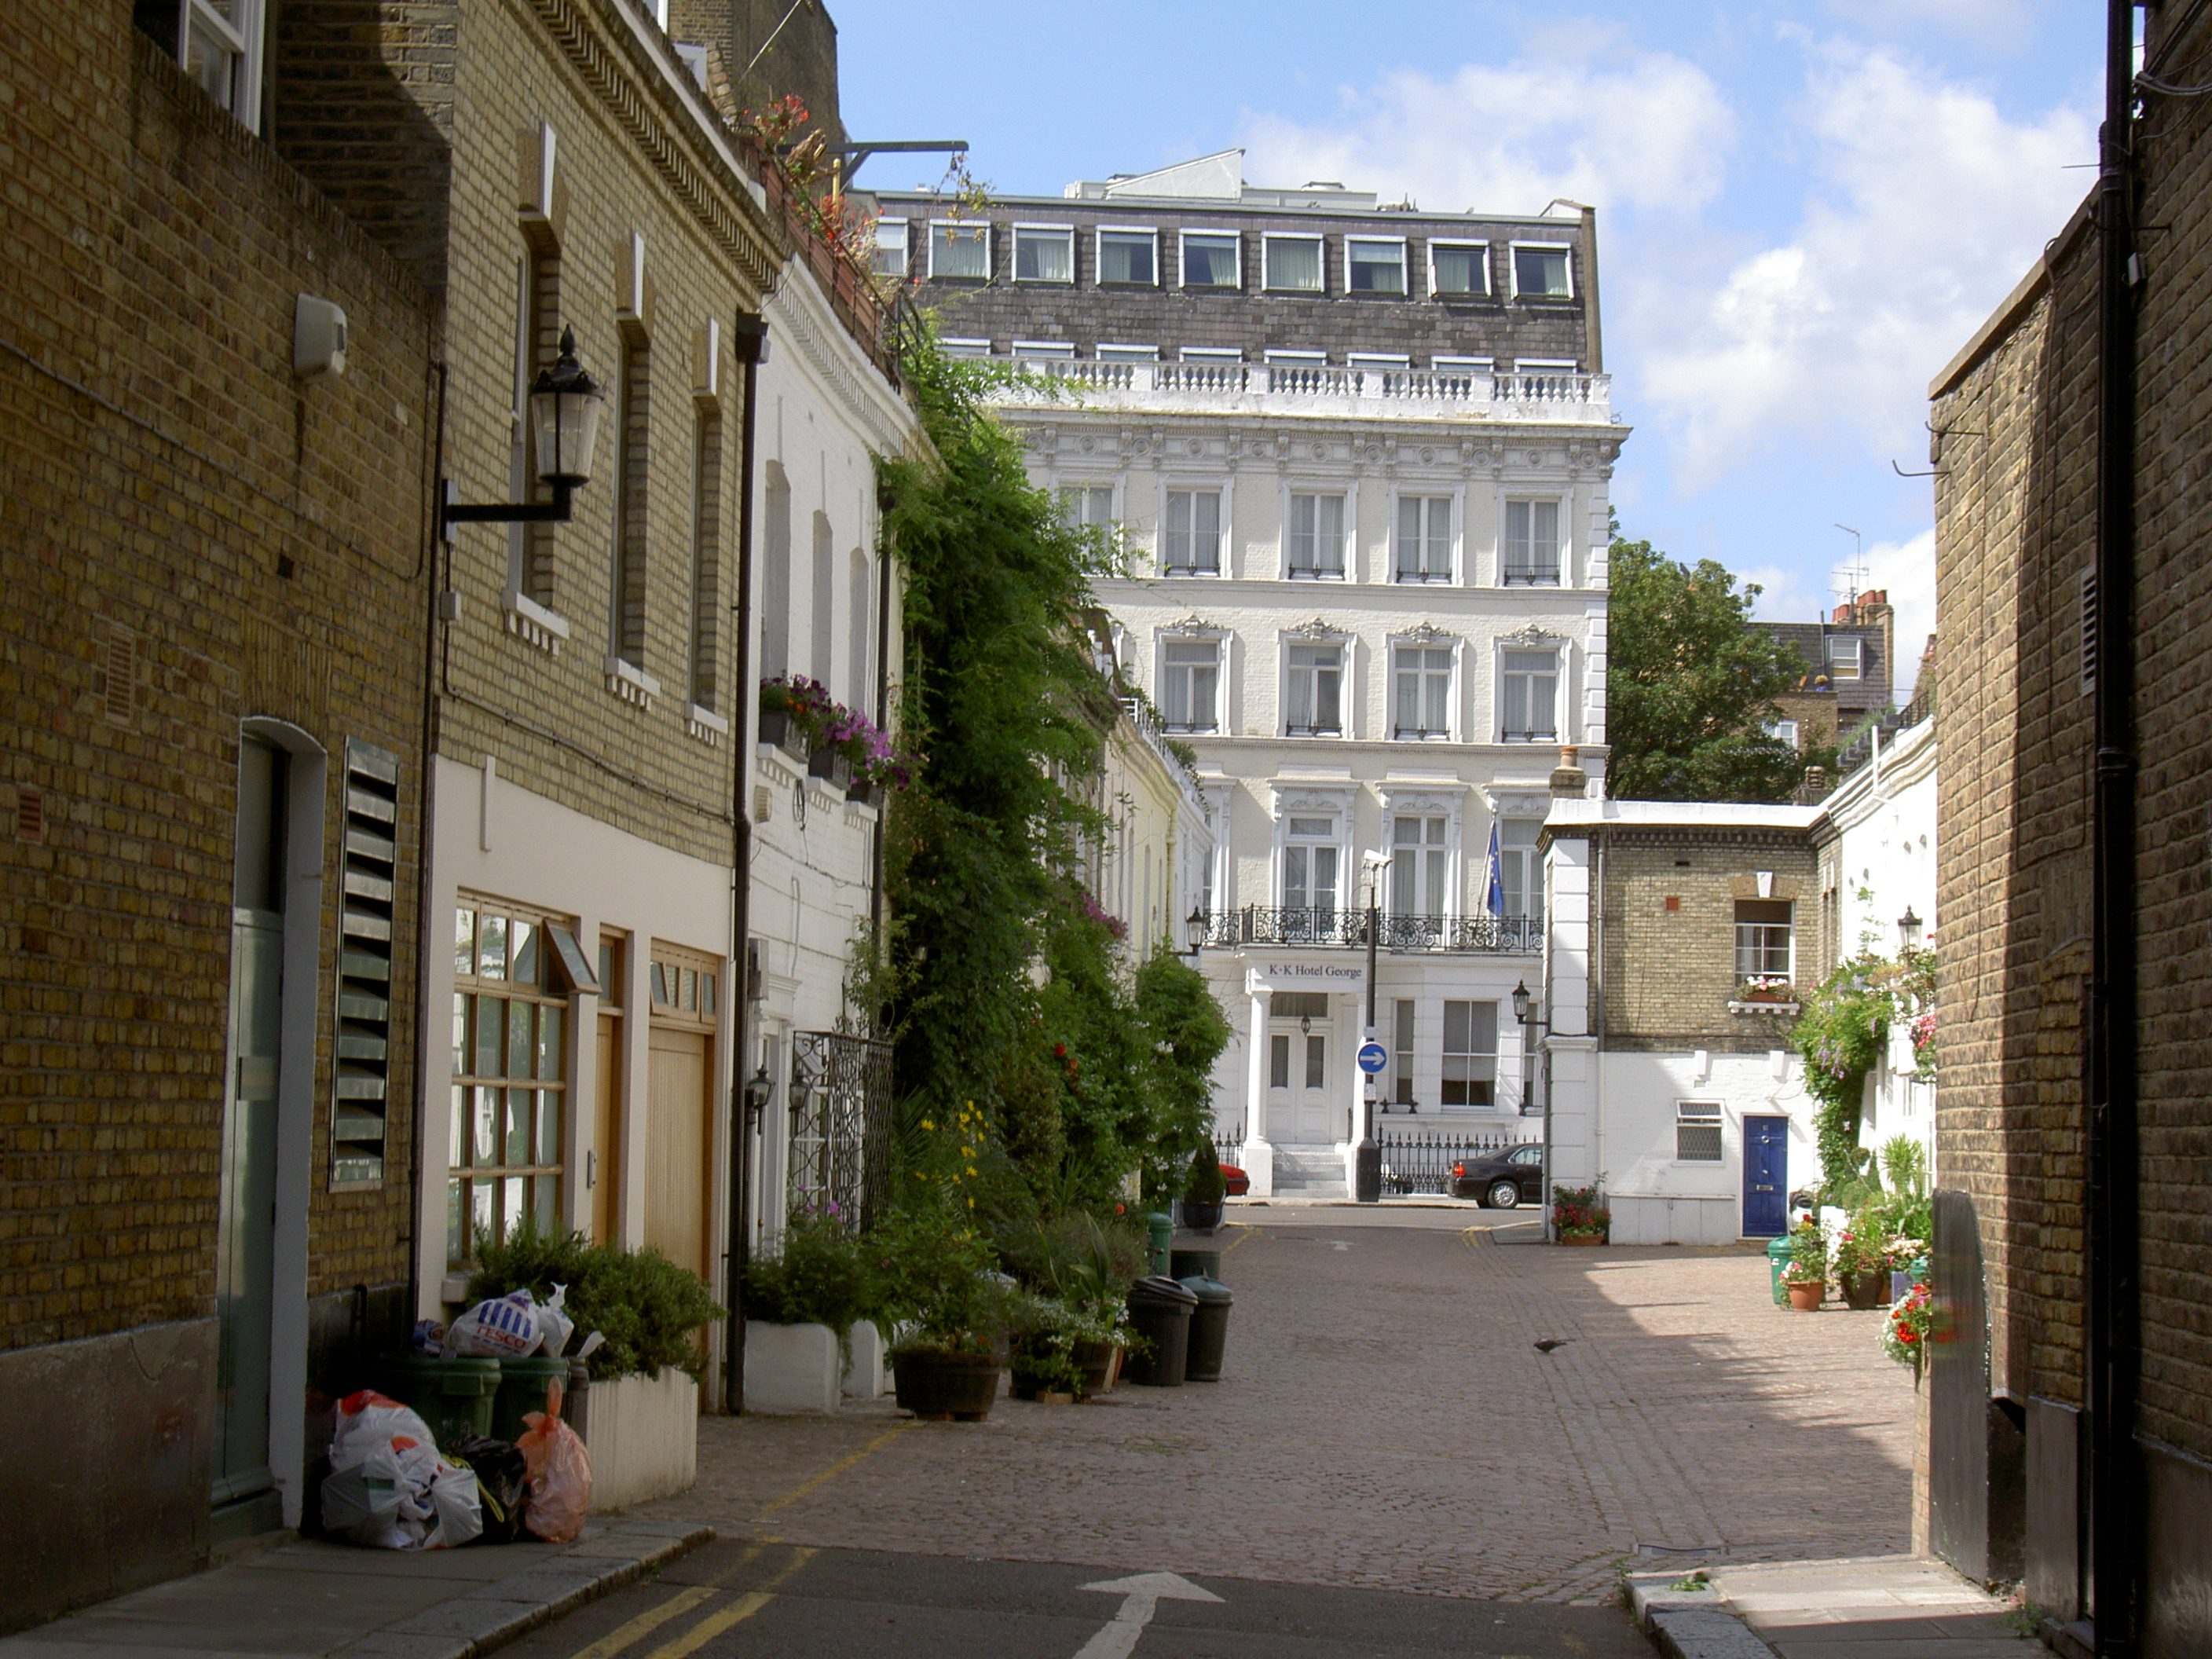 File:Typical Street In The Royal Borough Of Kensington And Chelsea ...